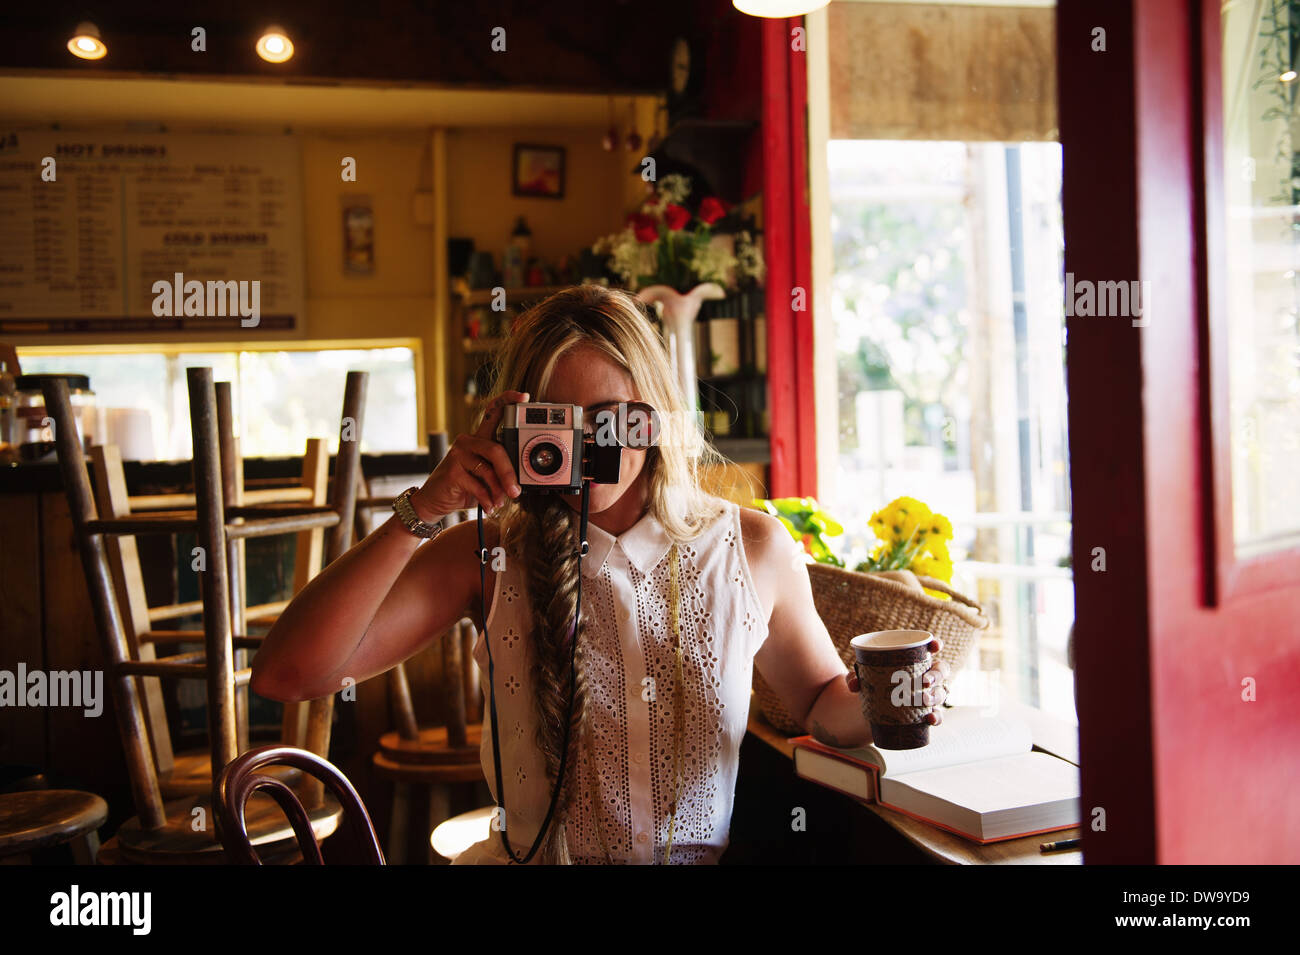 Young woman taking photograph in cafe - Stock Image